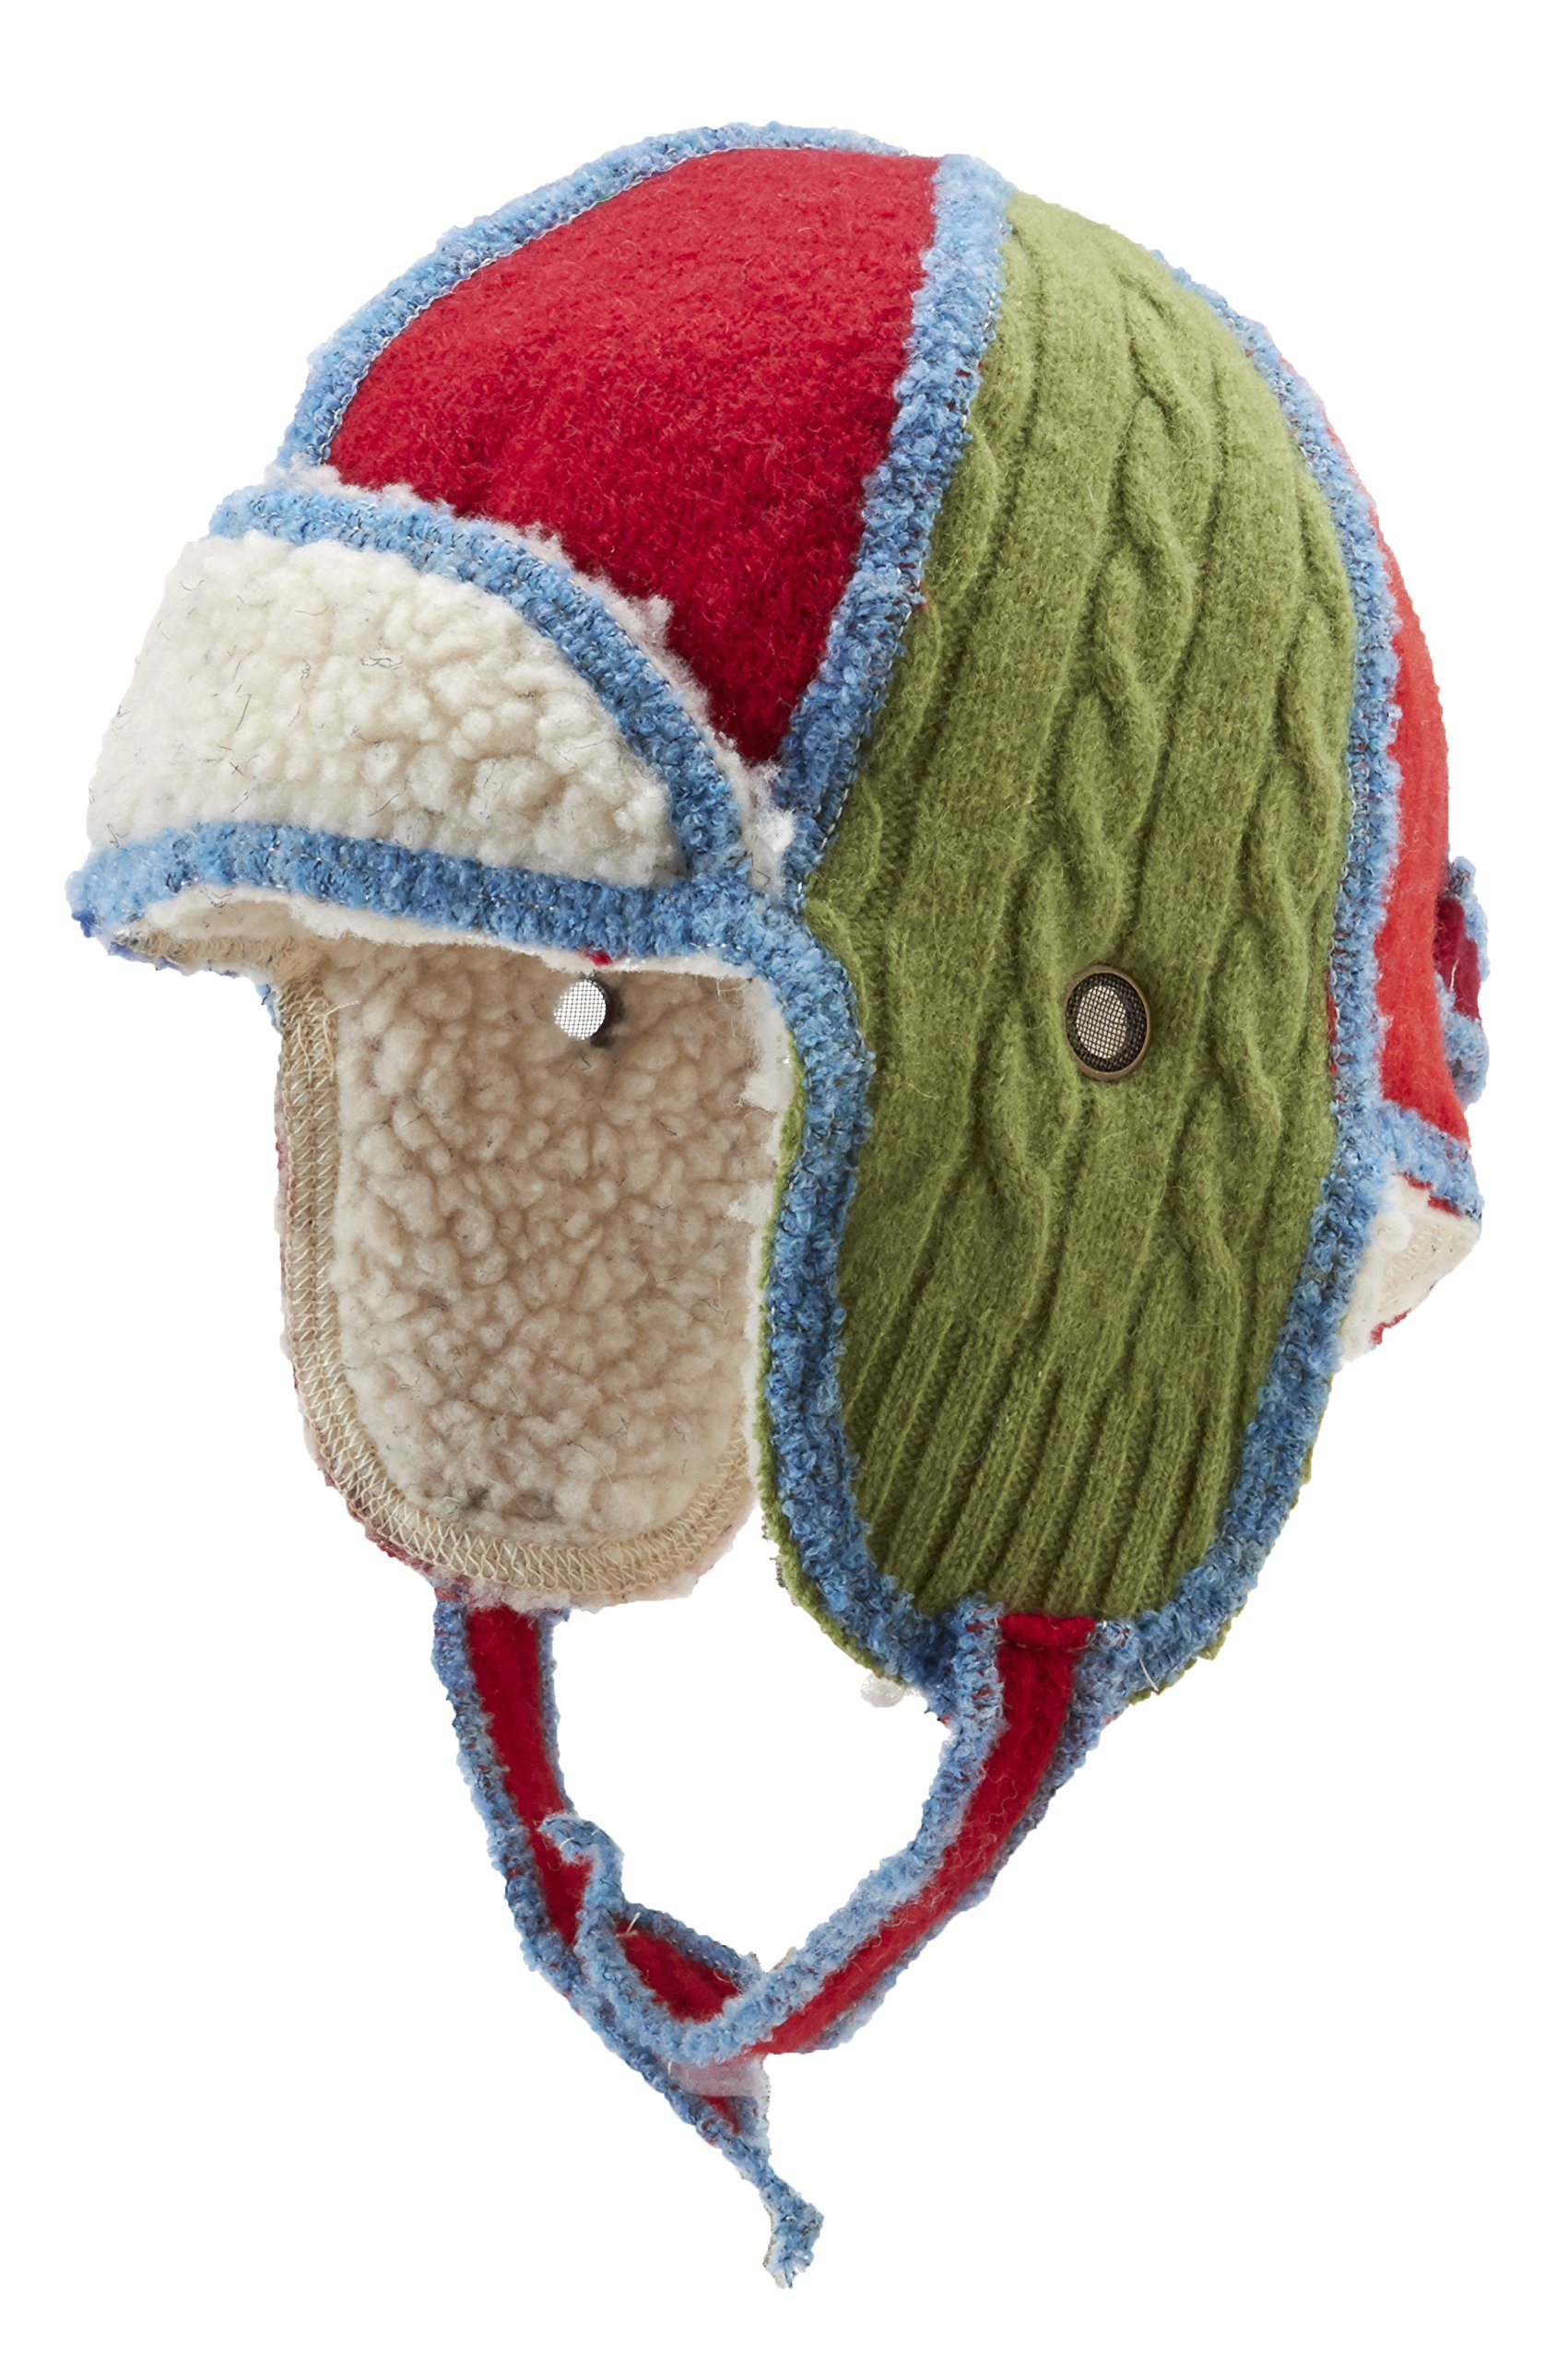 Xob Xobomber Upcycled Wool Sweaters Kids Winter Hat, Brights, Small/Toddler by Icebox Knitting